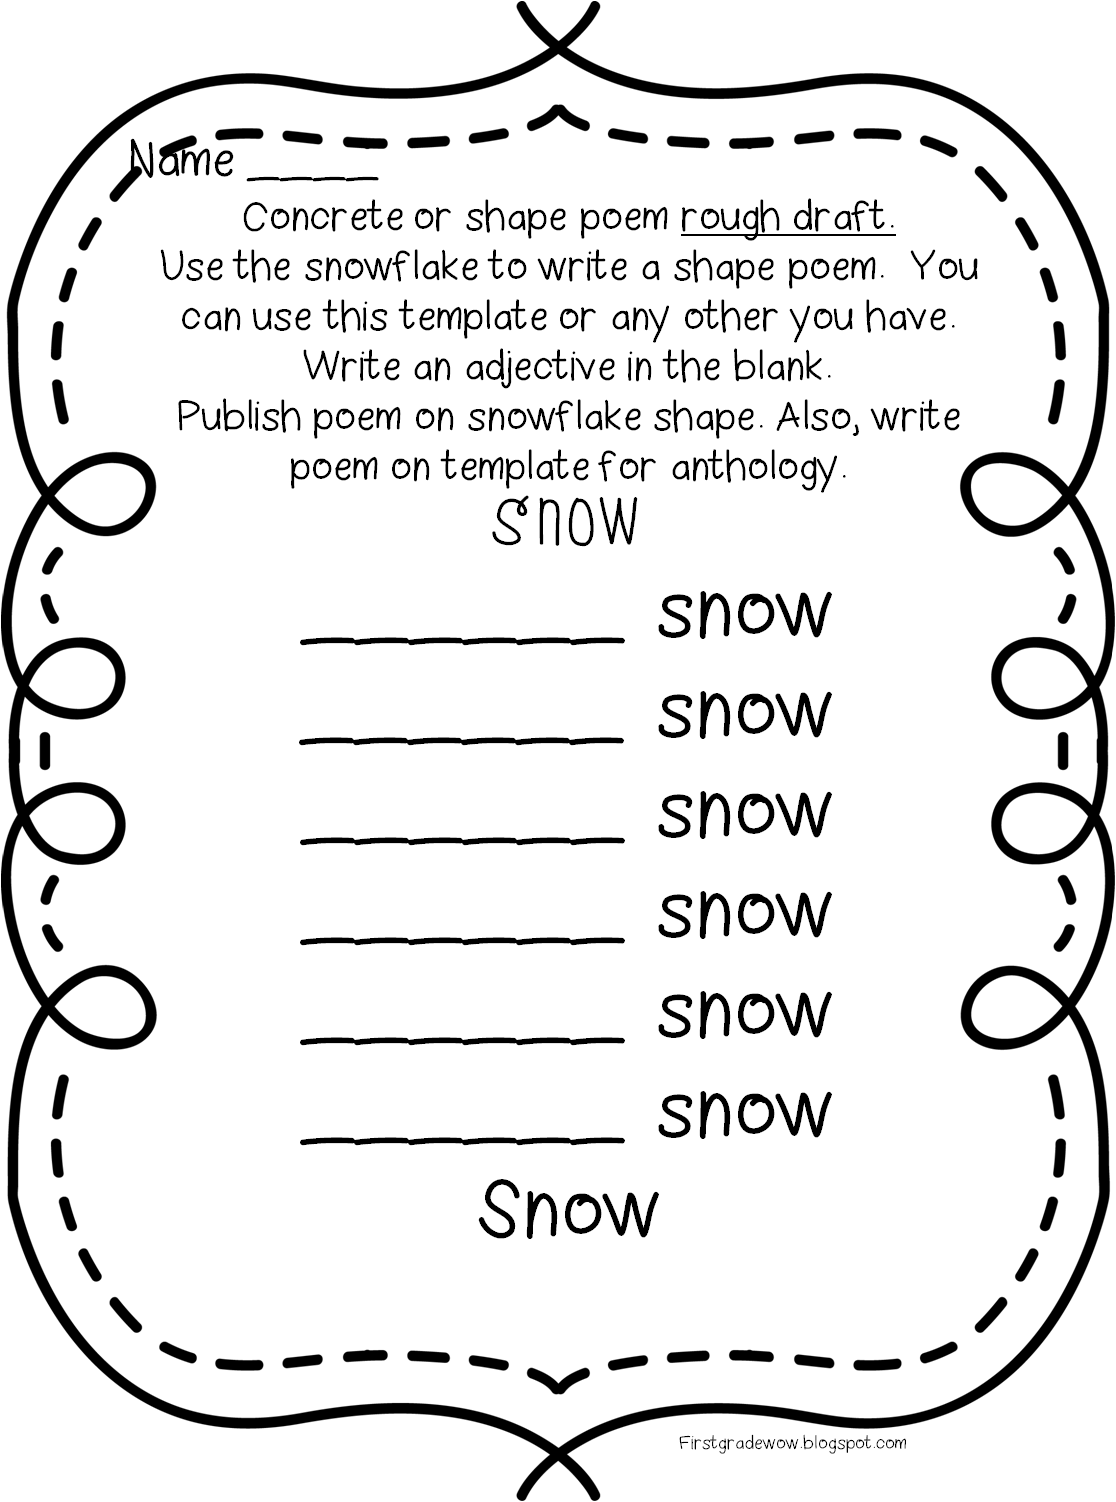 Kid catching snowflake on tongue clipart black and white clipart royalty free stock Poetry Unit Updated! | First Grade Wow | Bloglovin' clipart royalty free stock